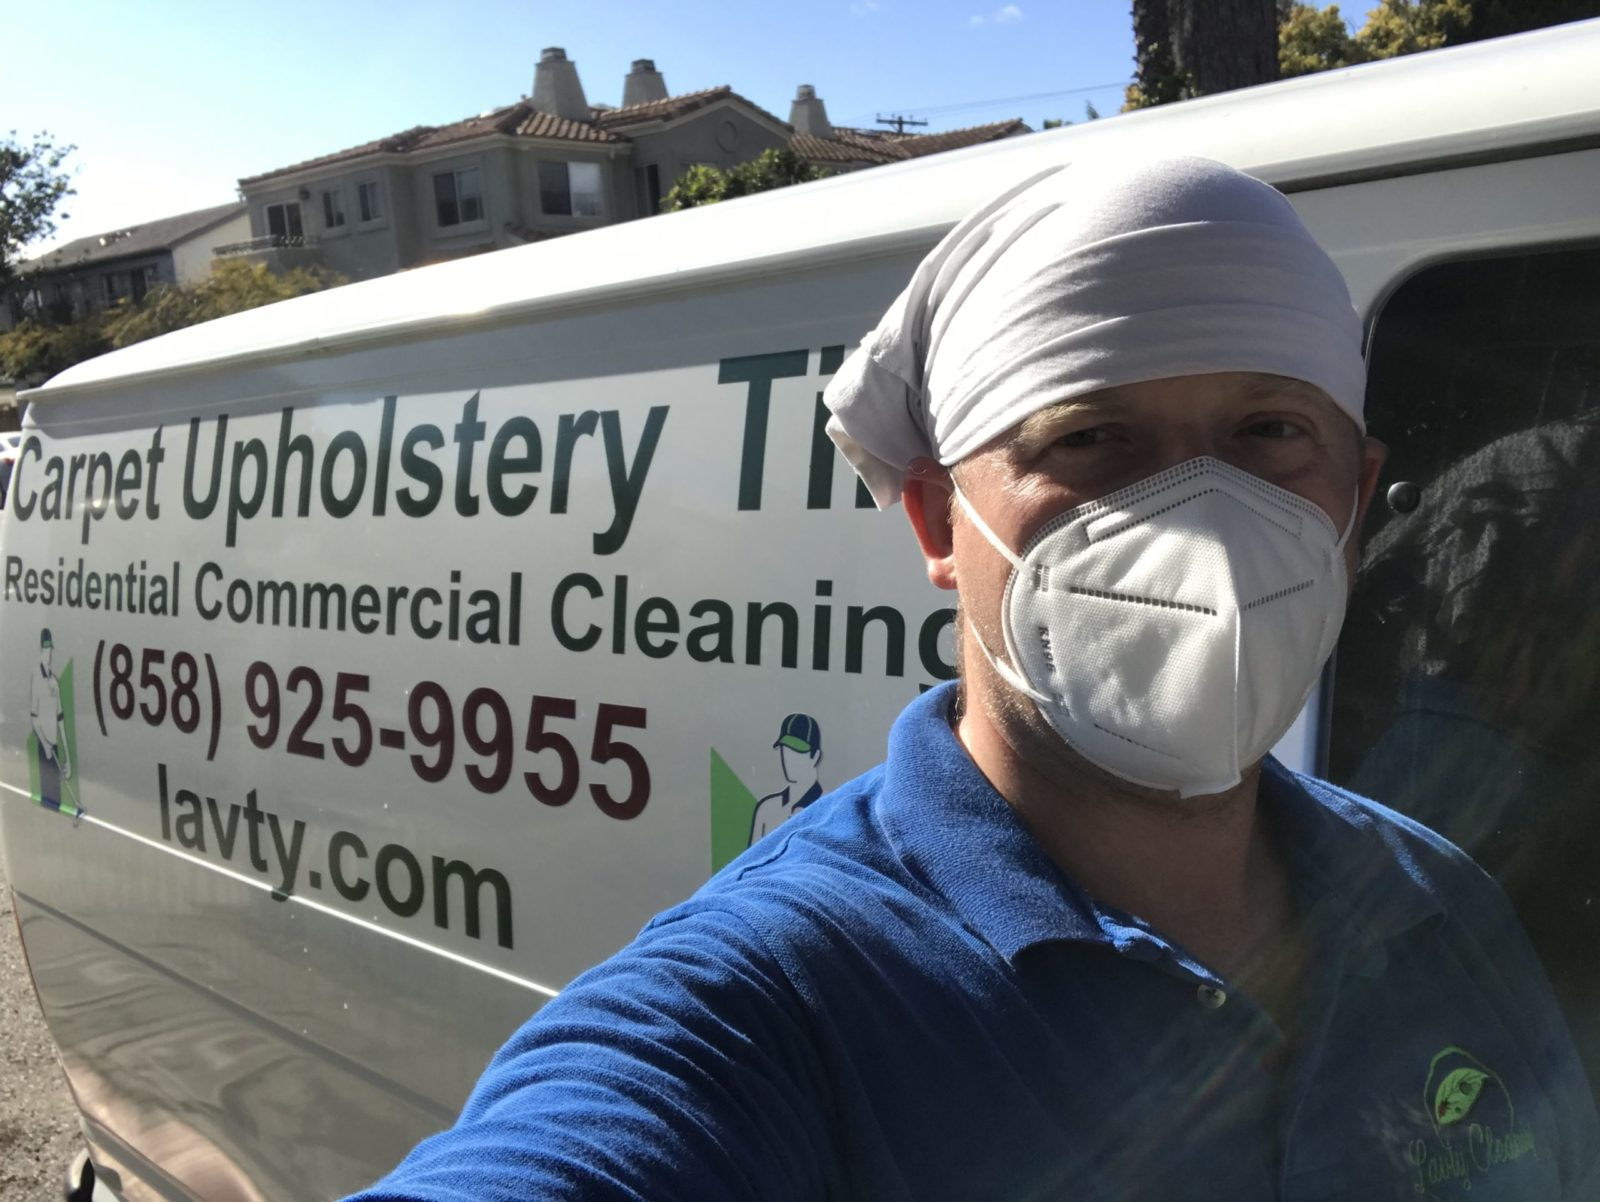 San Diego Carpet Cleaning - Carpet, Upholstery, Tile Service